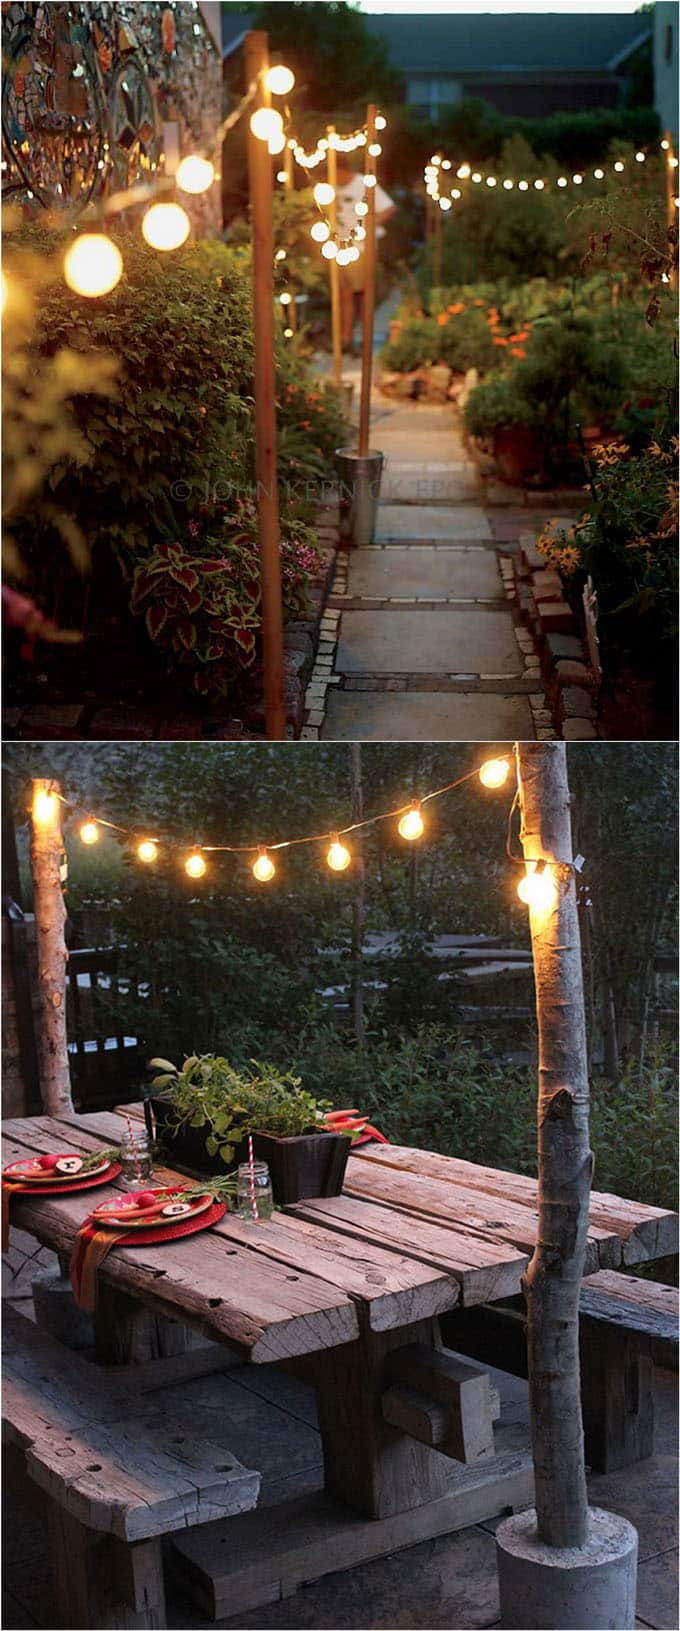 Bon DIY Outdoor Lighting Ideas For Patios And Walkways